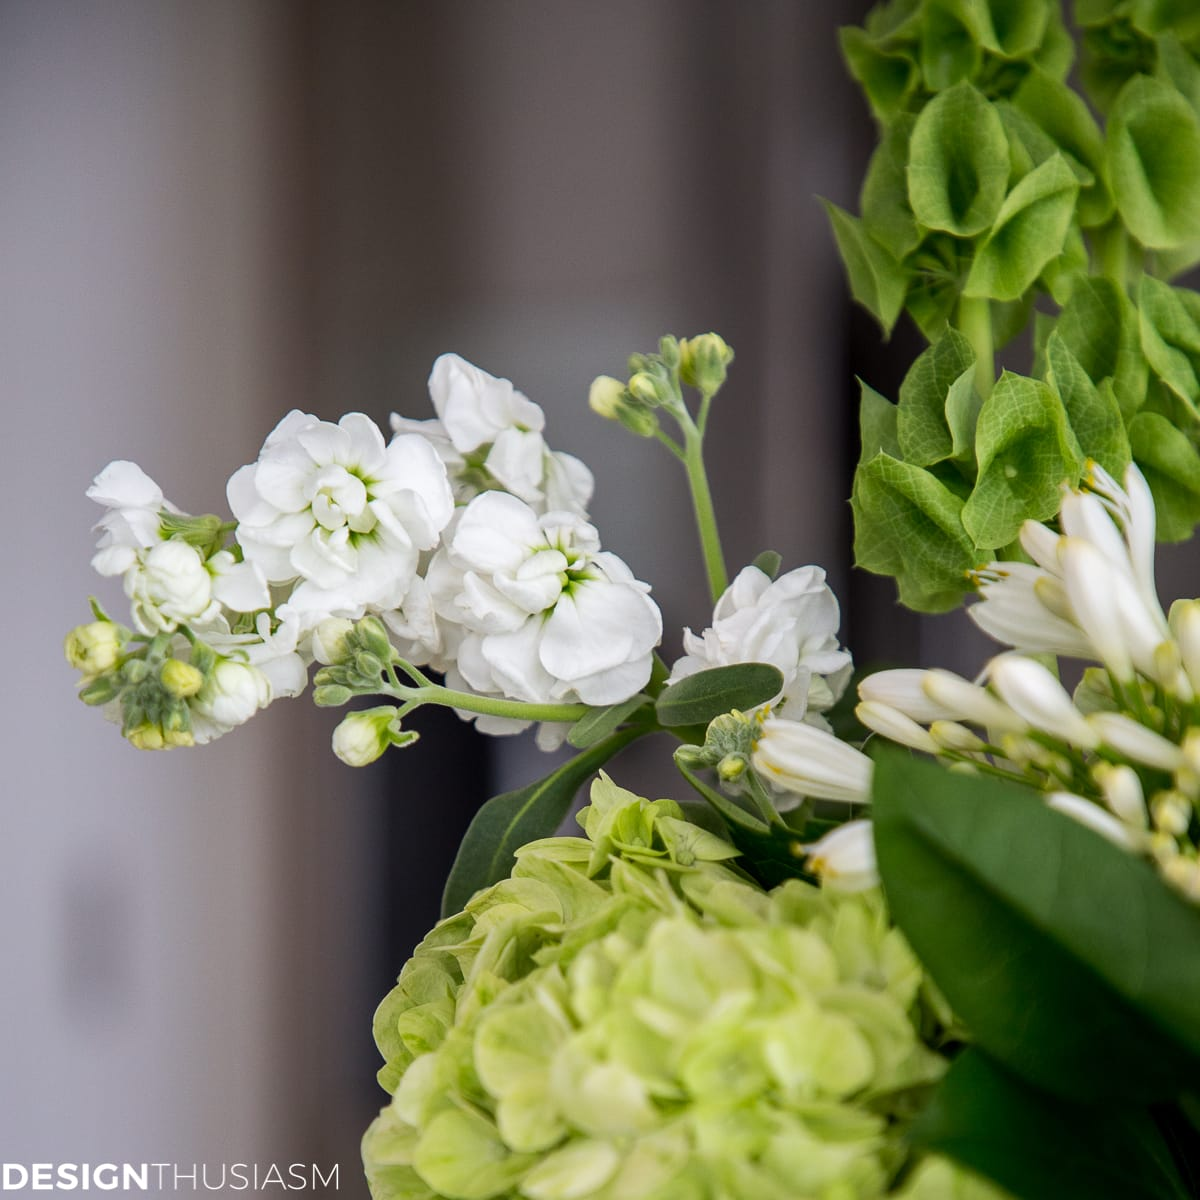 Inviting spring into your home with an arrangement of green flowers welcoming spring with an arrangement of green flowers designthusiasm mightylinksfo Images